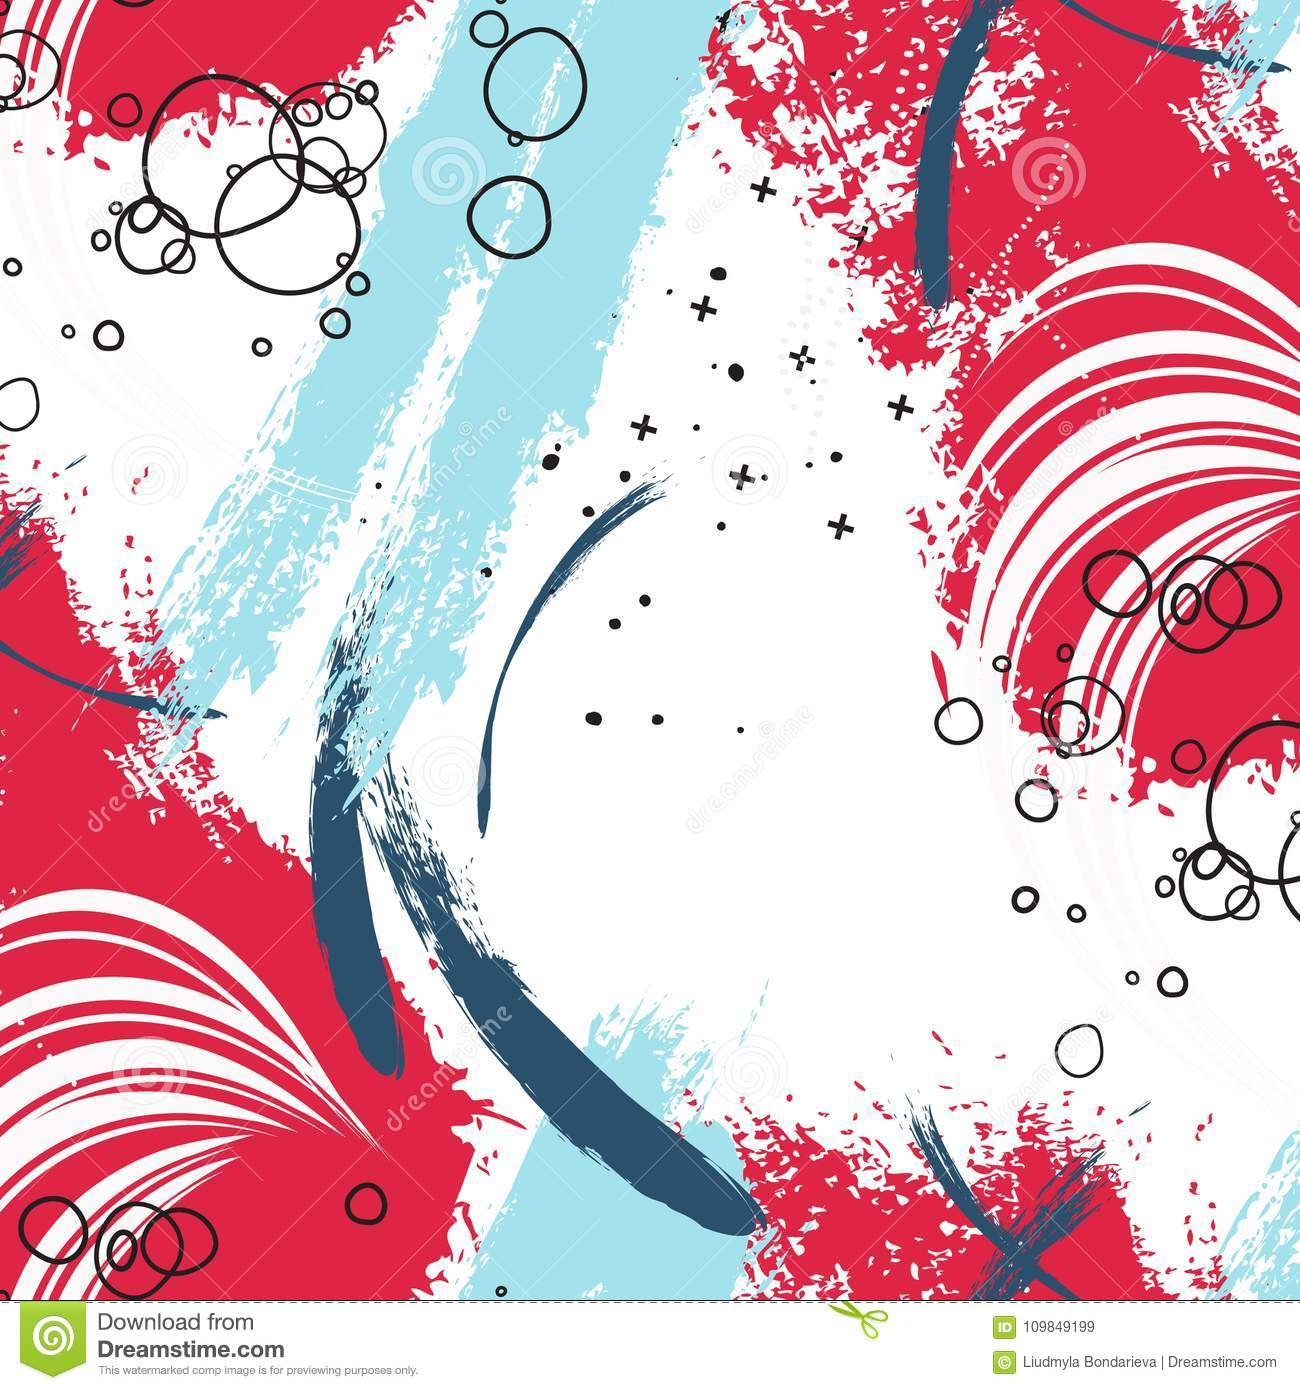 Paint Background Poster Stain Trendy Scrapbook Cover Modern Fabric